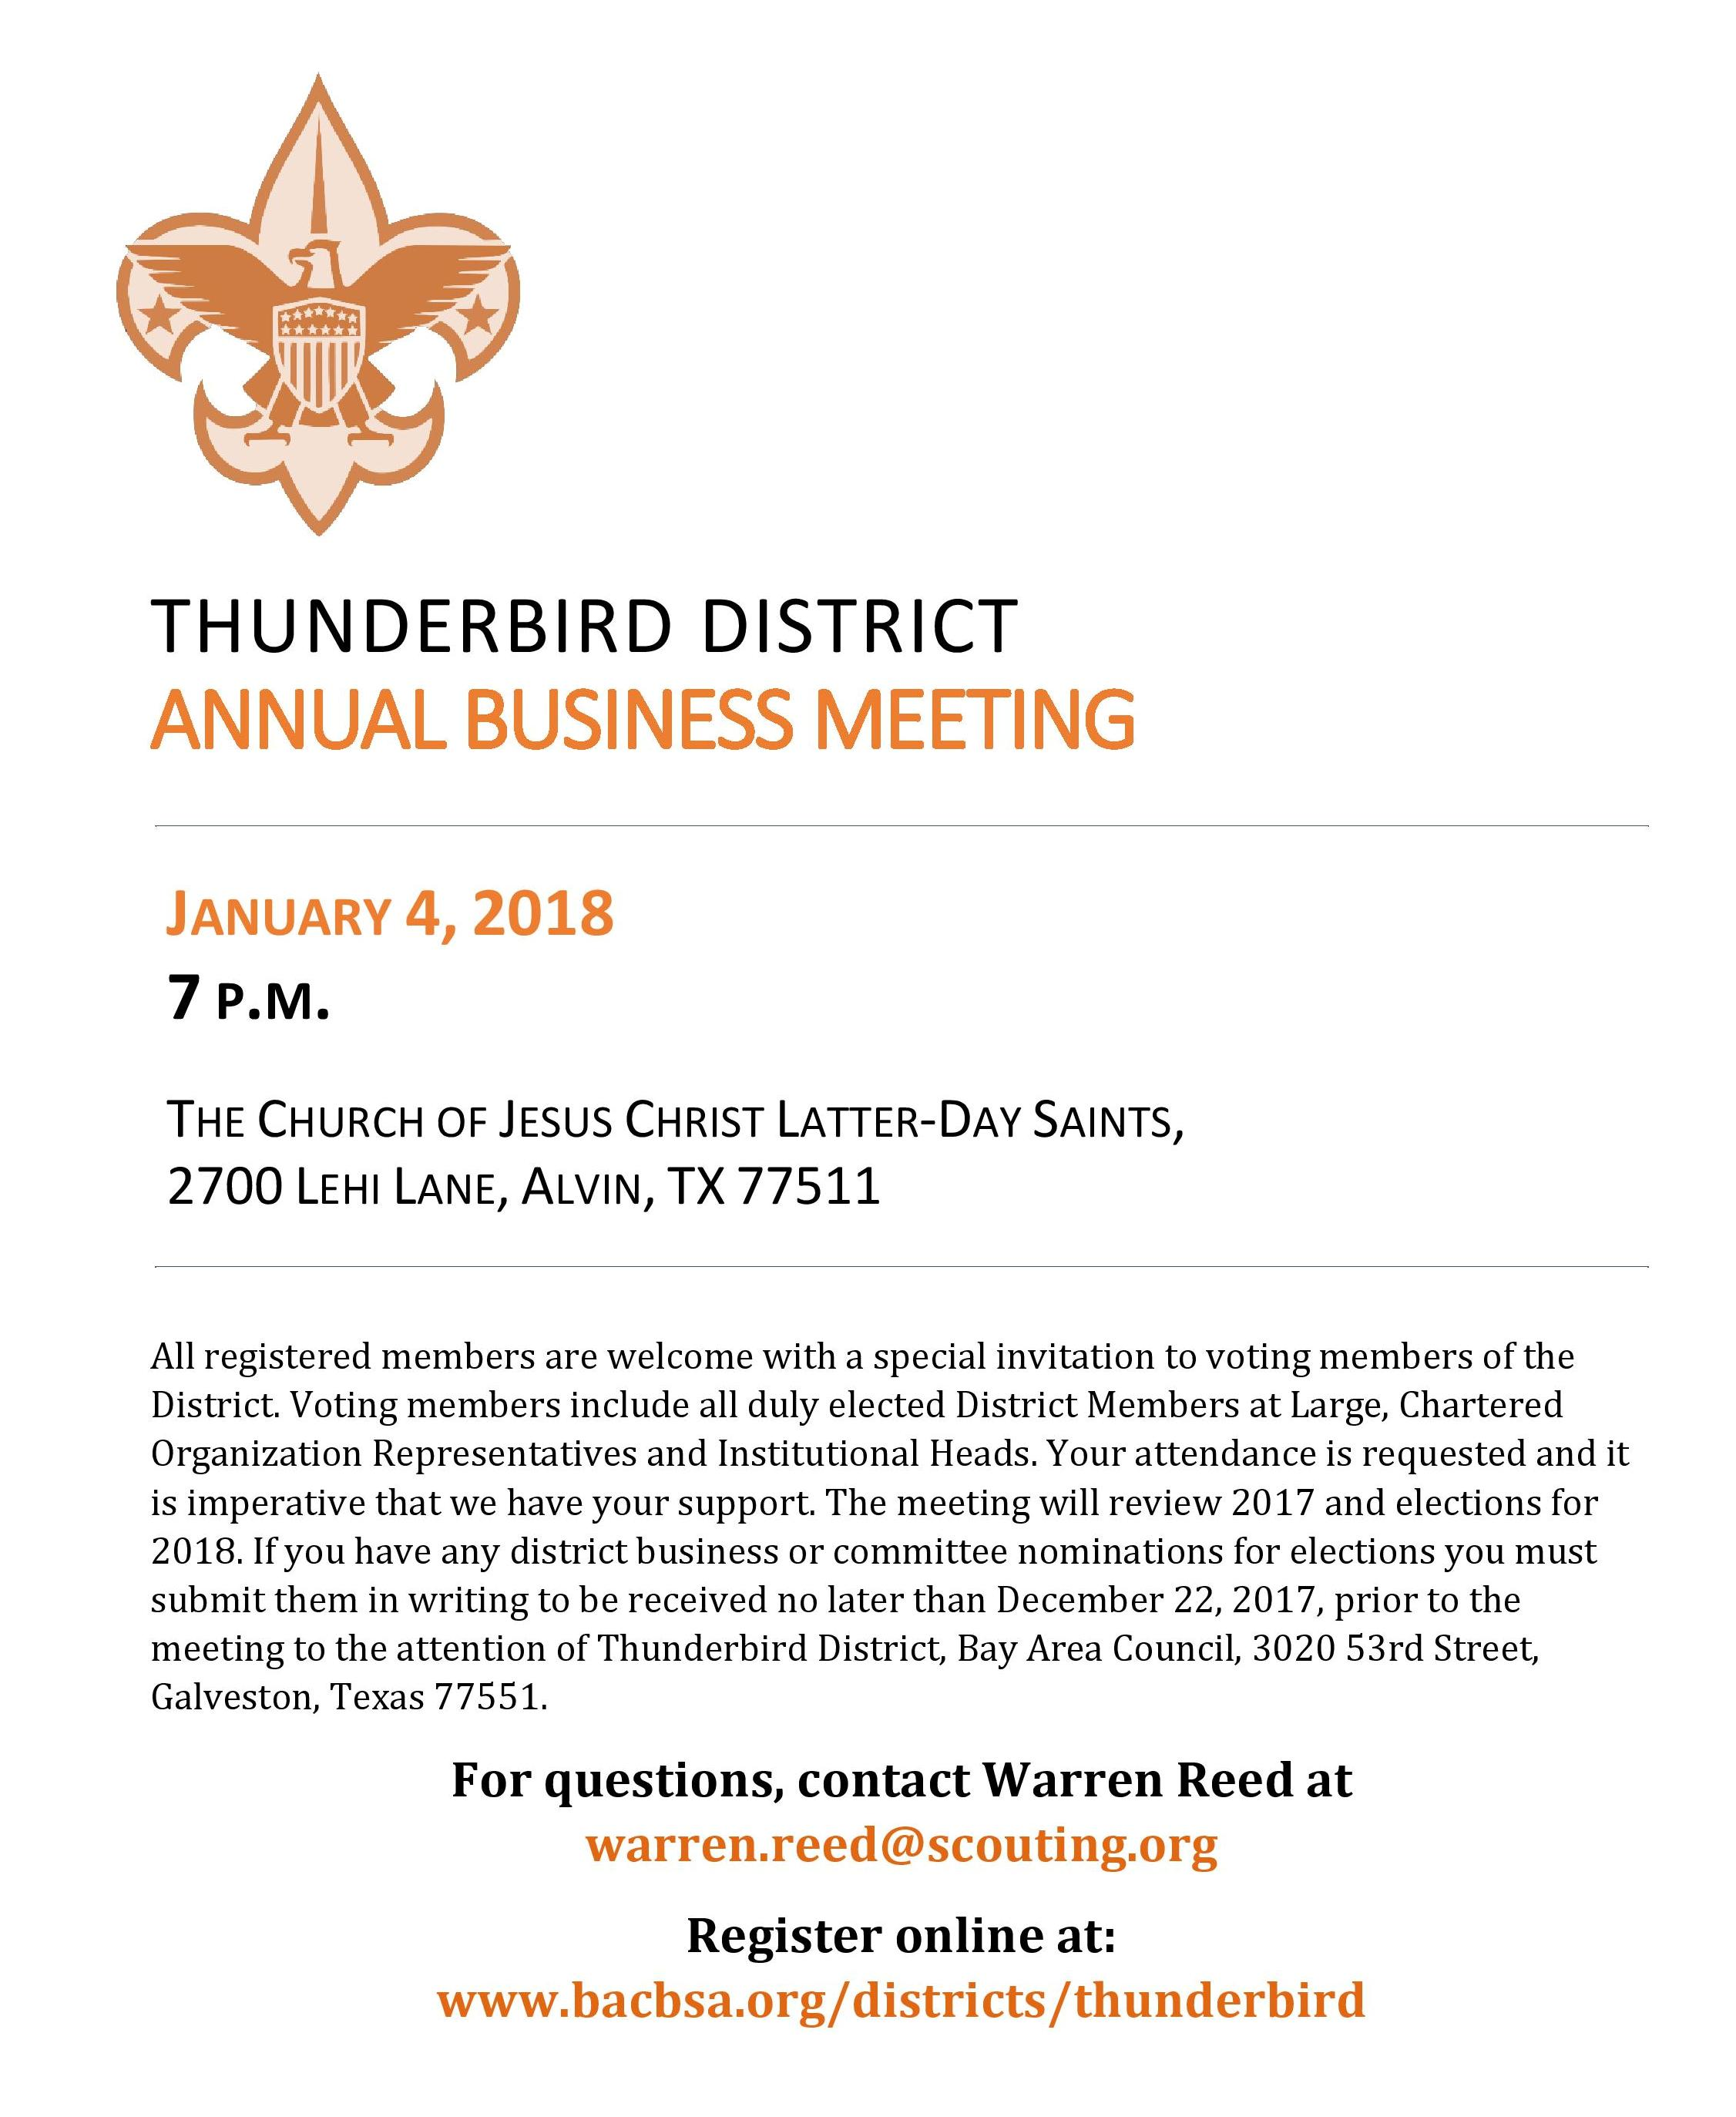 Thunderbird Annual Business Meeting